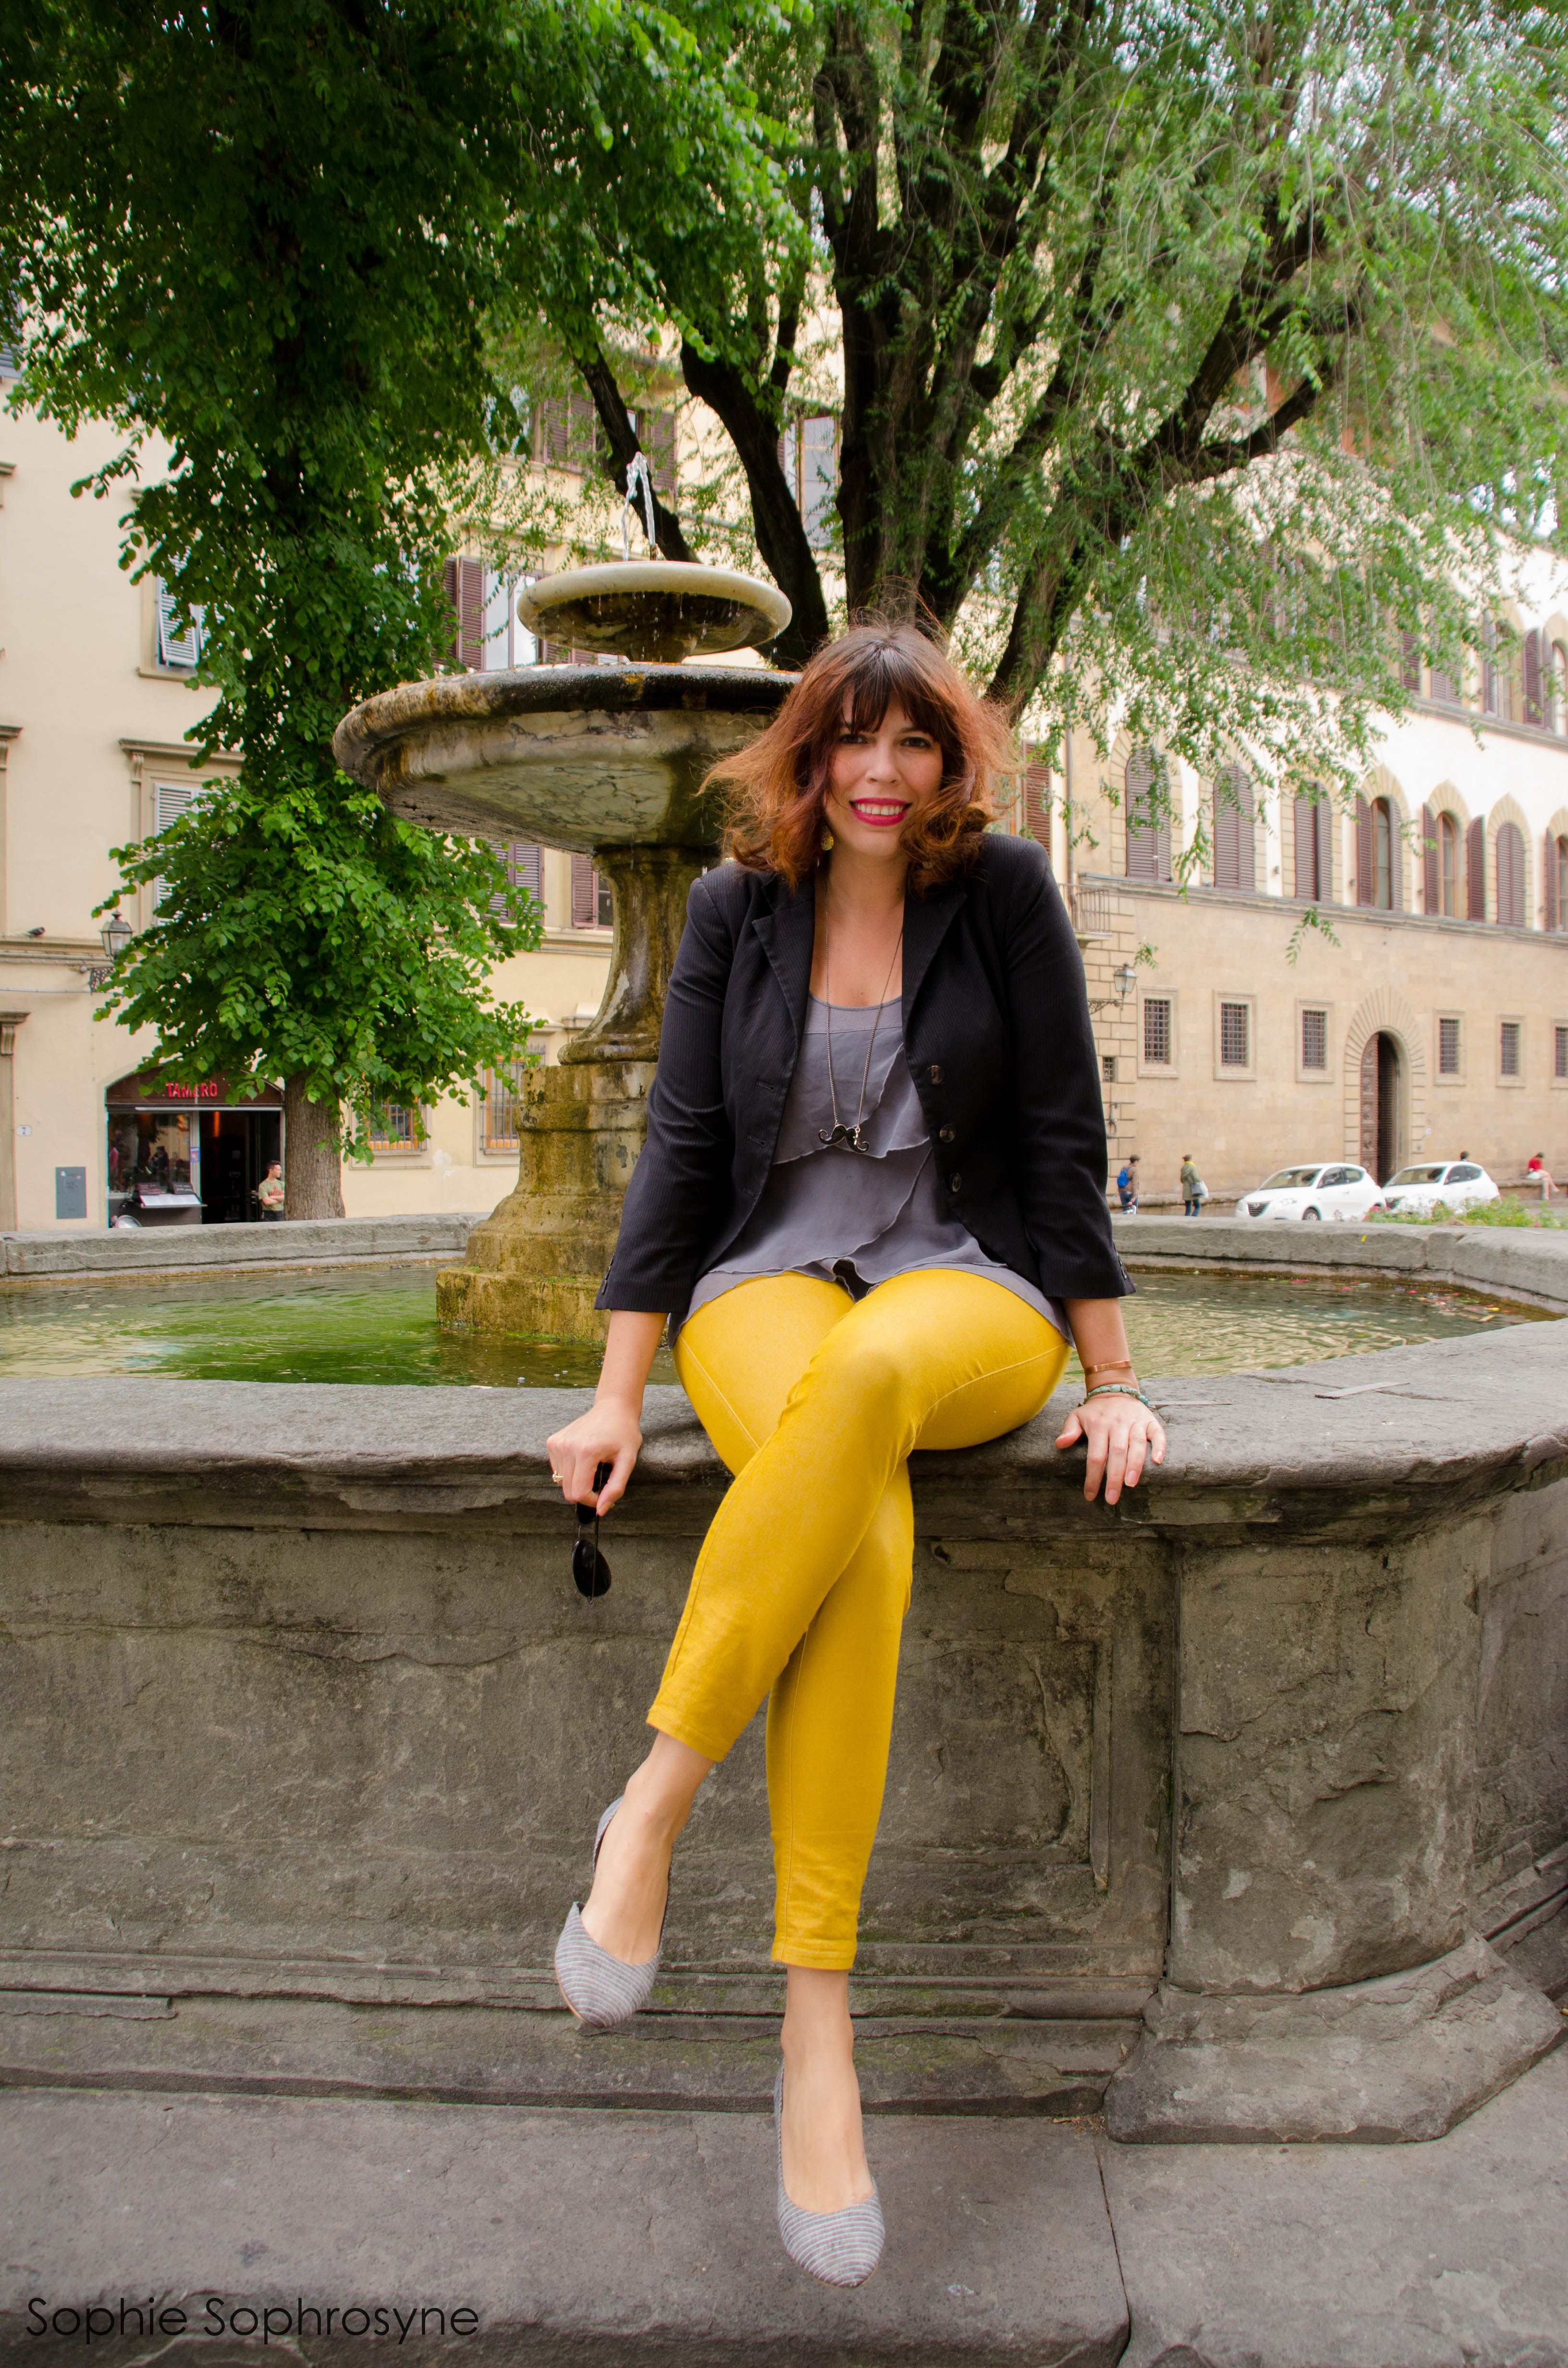 About Girl In Florence